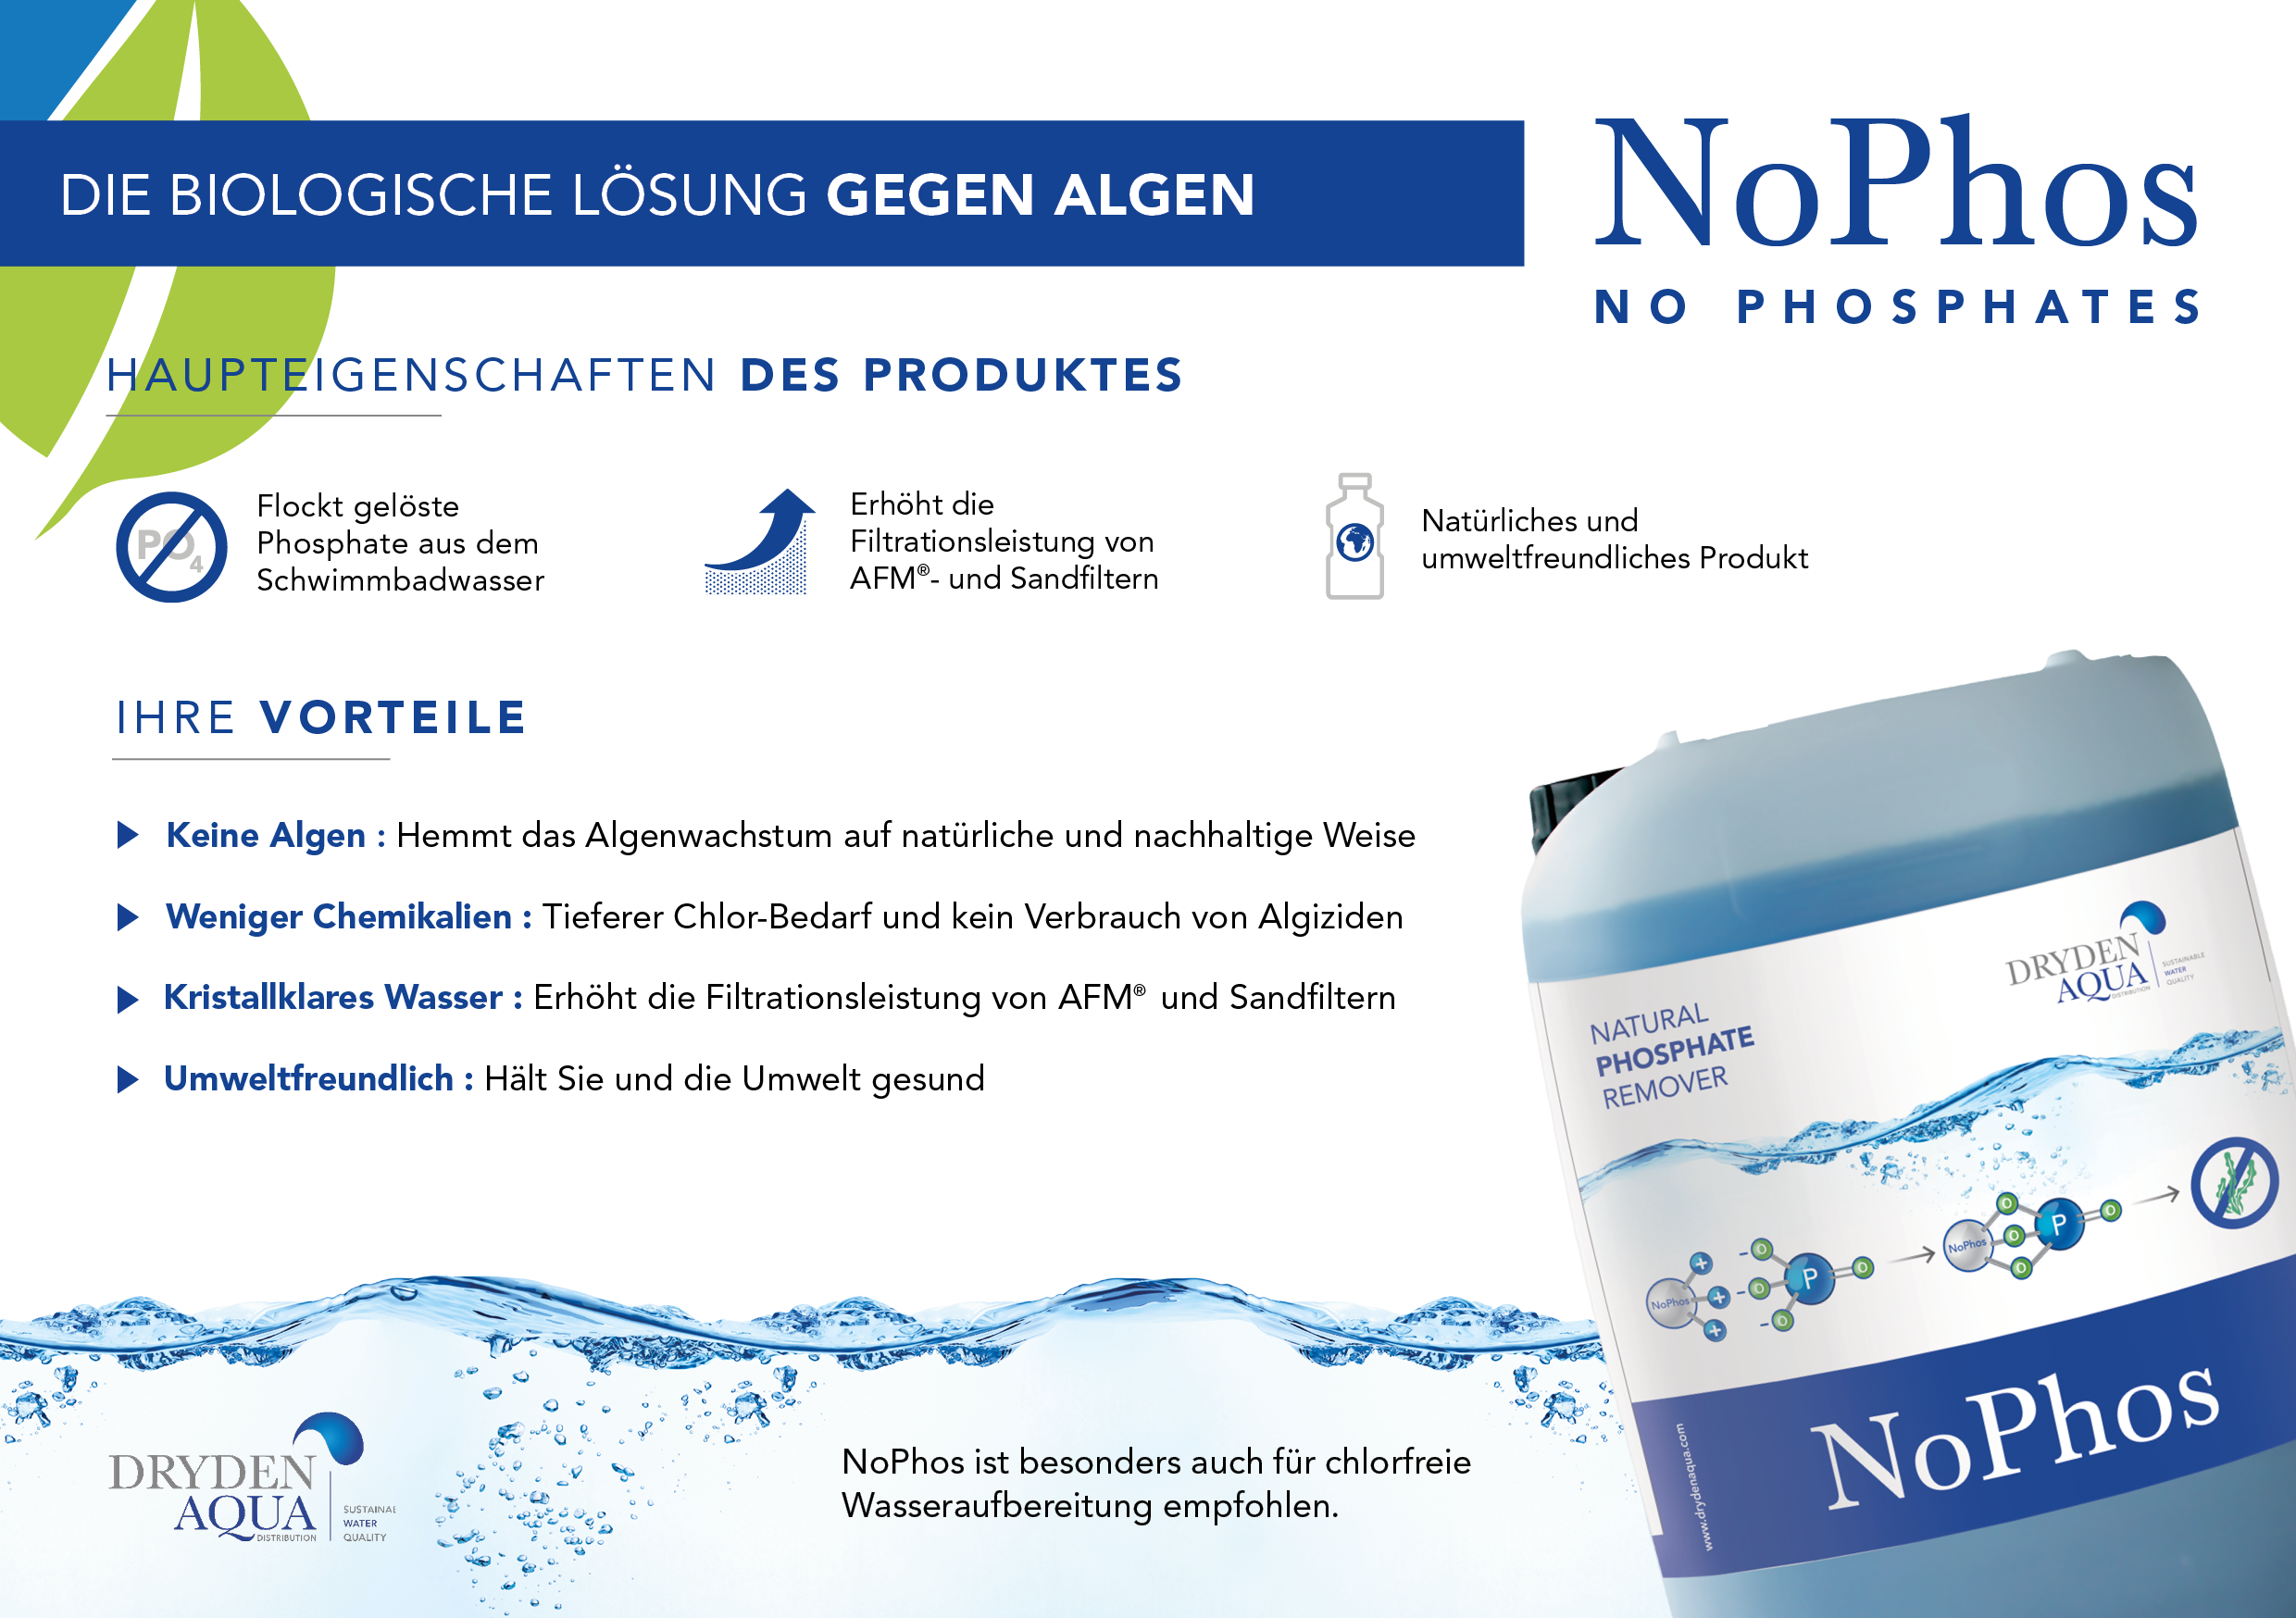 NoPhos A5 brochure German